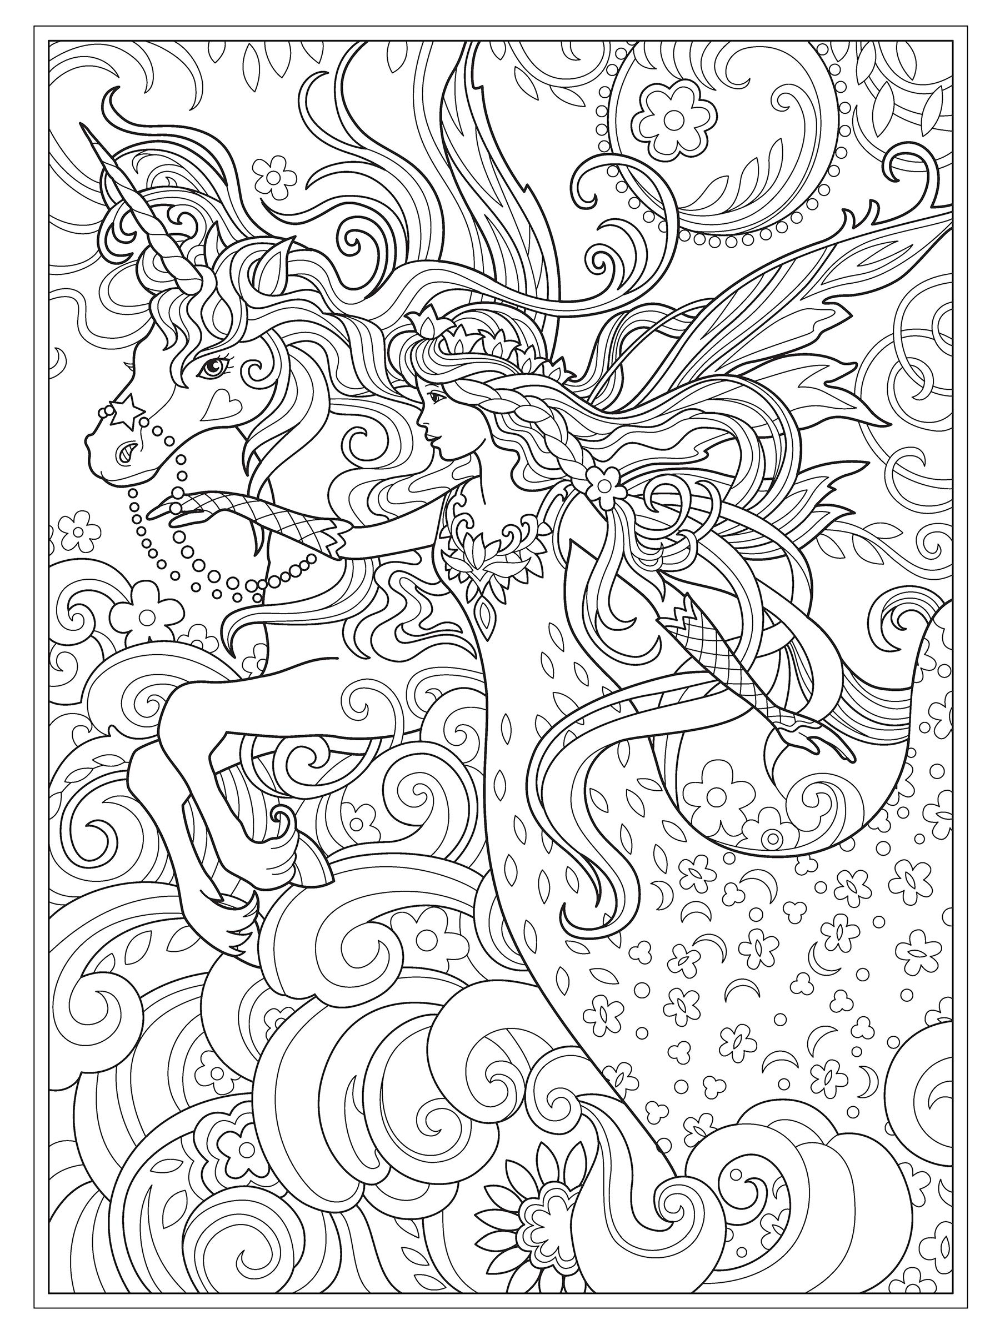 Pin On Coloring Pages Marjorie Sarnat